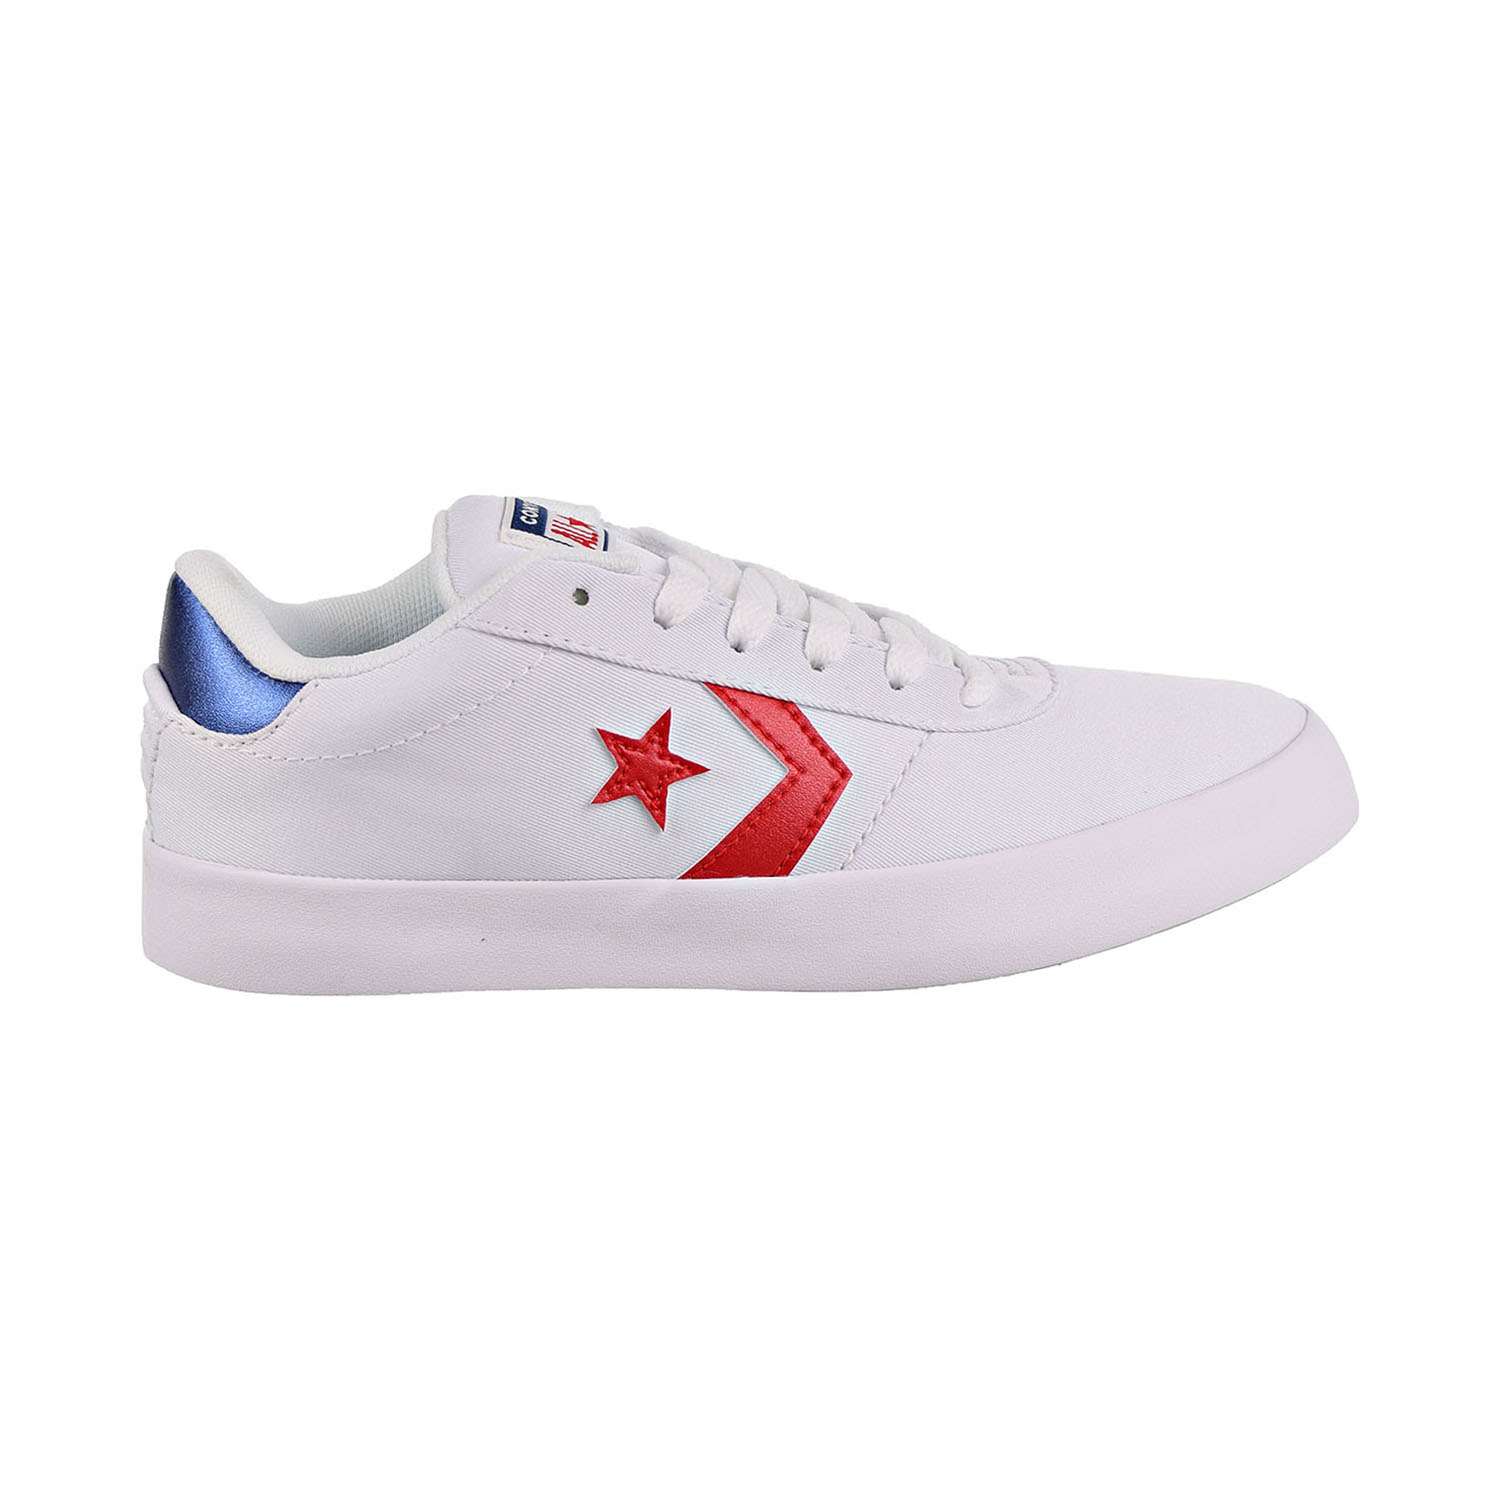 Details about Converse Point Star Ox Women's Shoes White Enamel Red Navy 563431C